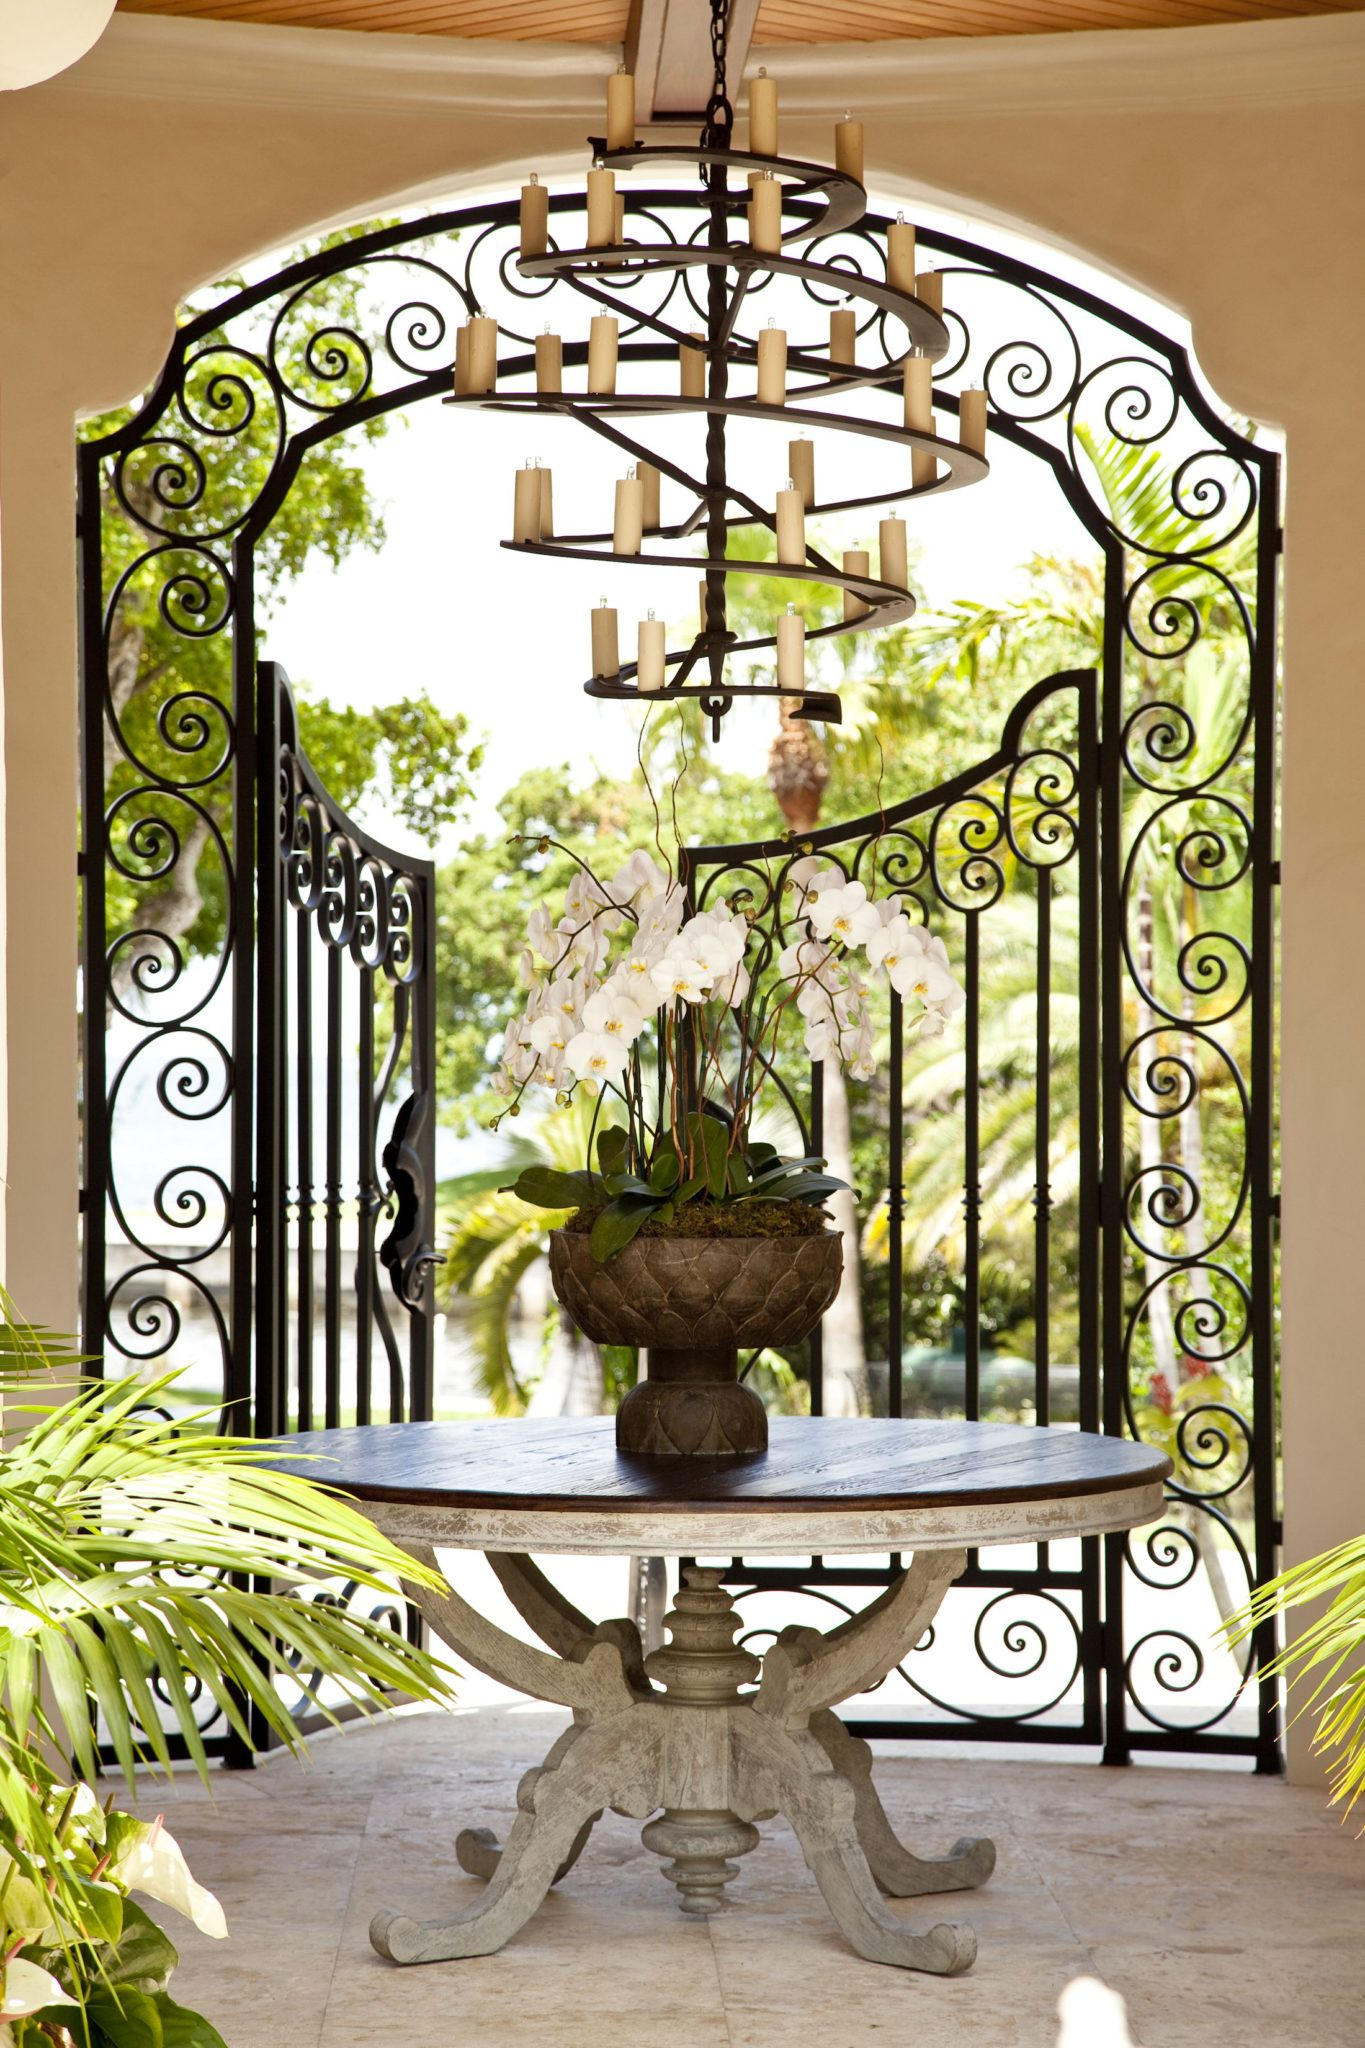 Wrought iron details including a entry gate and a candlelit chandelier. by Taylor & Taylor